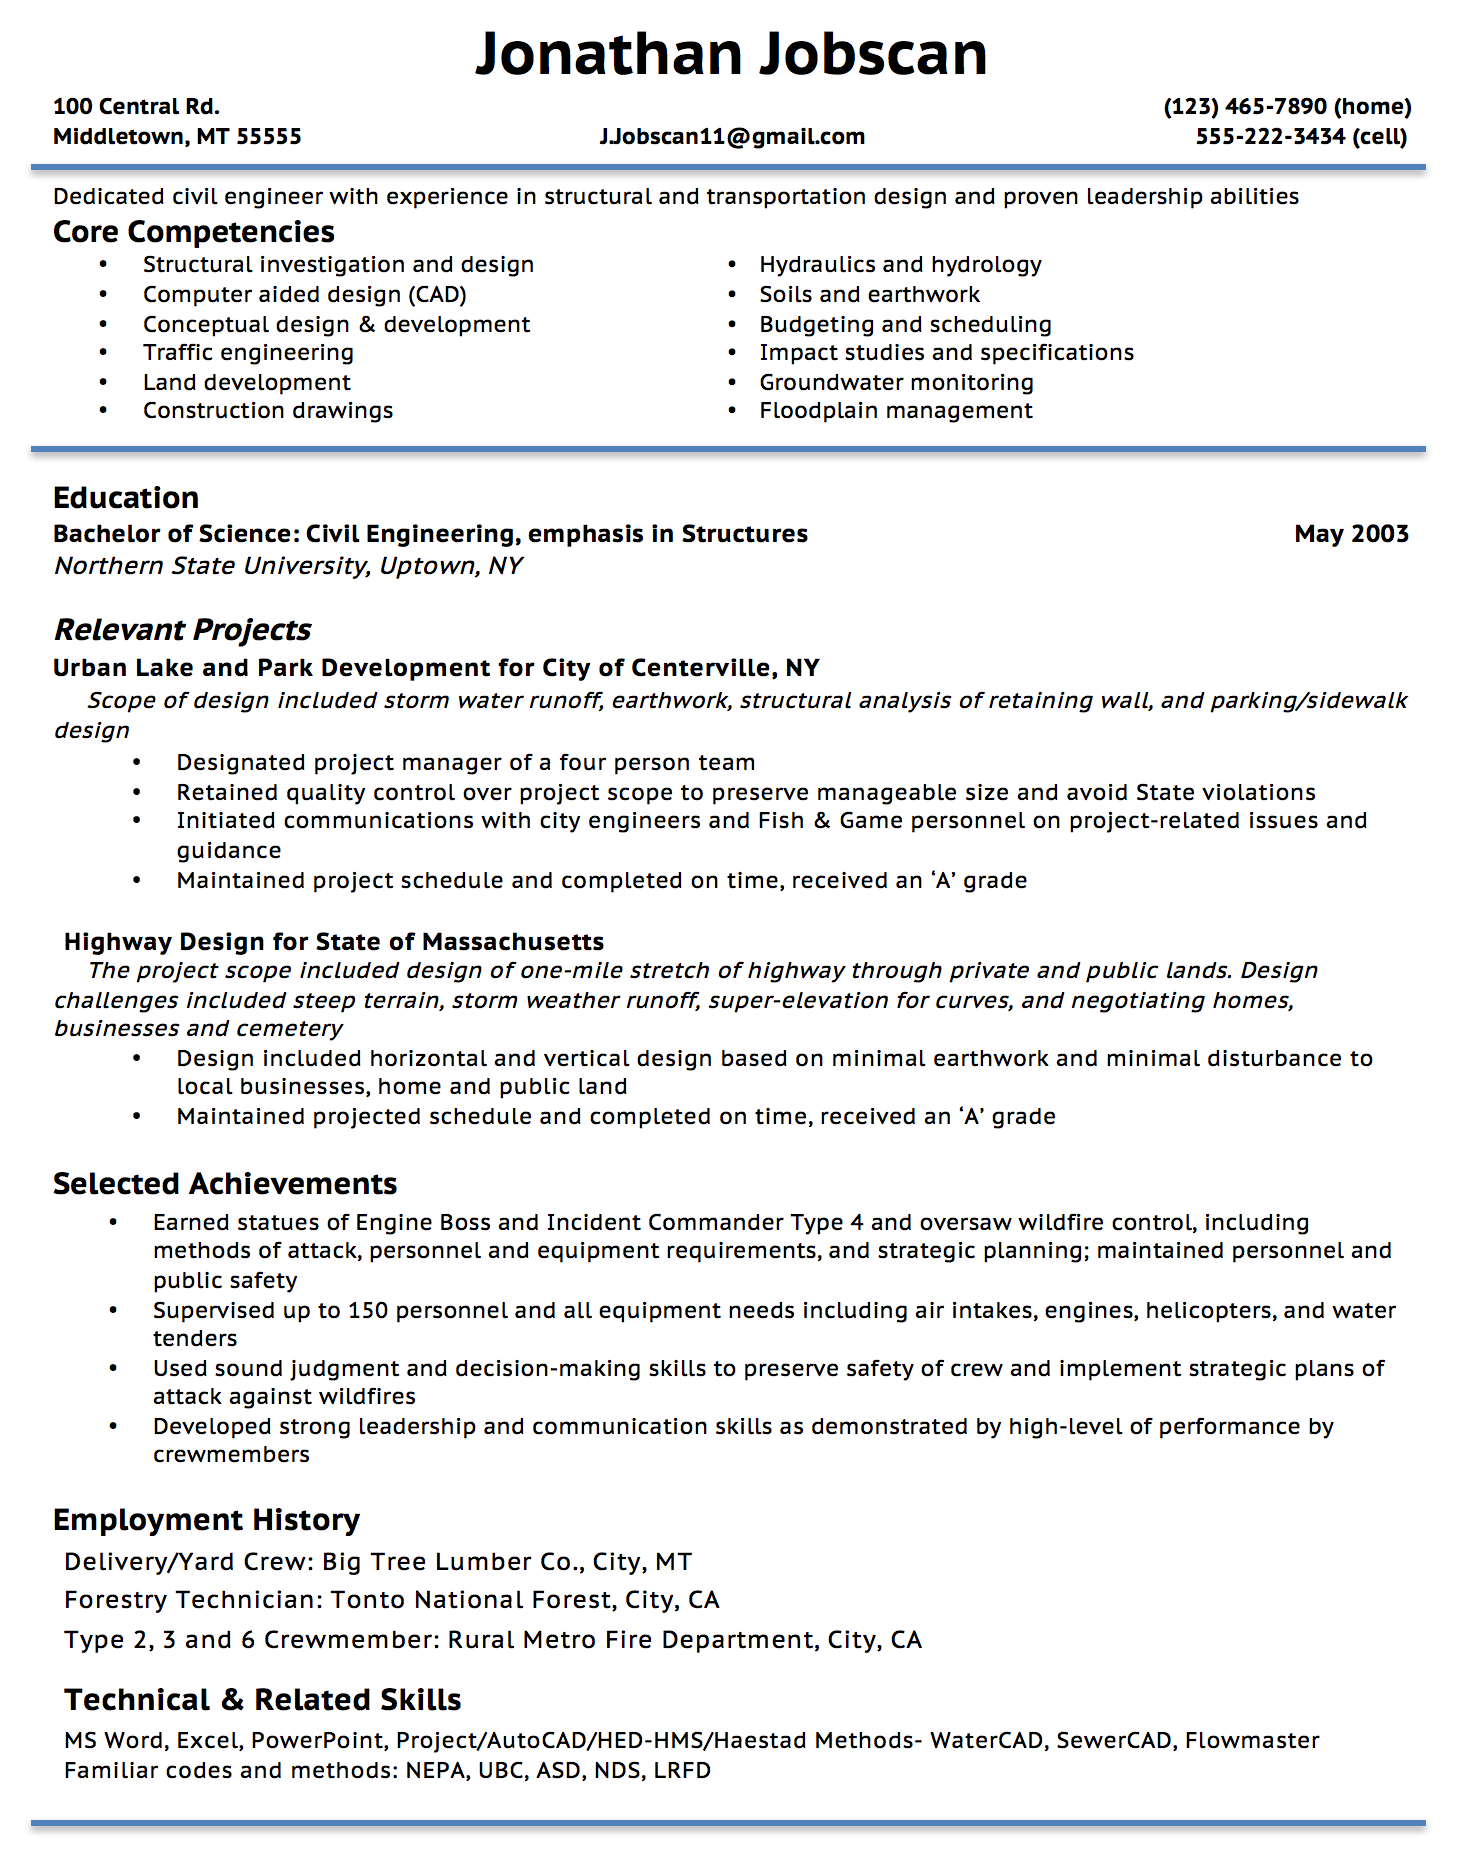 Opposenewapstandardsus  Pleasant Resume Writing Guide  Jobscan With Fascinating Example Of A Functional Resume Format With Easy On The Eye Resume Categories Also Retail Resume Skills In Addition Example Of Resumes And Professional Resume Services As Well As Monster Resume Search Additionally Recent Graduate Resume From Jobscanco With Opposenewapstandardsus  Fascinating Resume Writing Guide  Jobscan With Easy On The Eye Example Of A Functional Resume Format And Pleasant Resume Categories Also Retail Resume Skills In Addition Example Of Resumes From Jobscanco